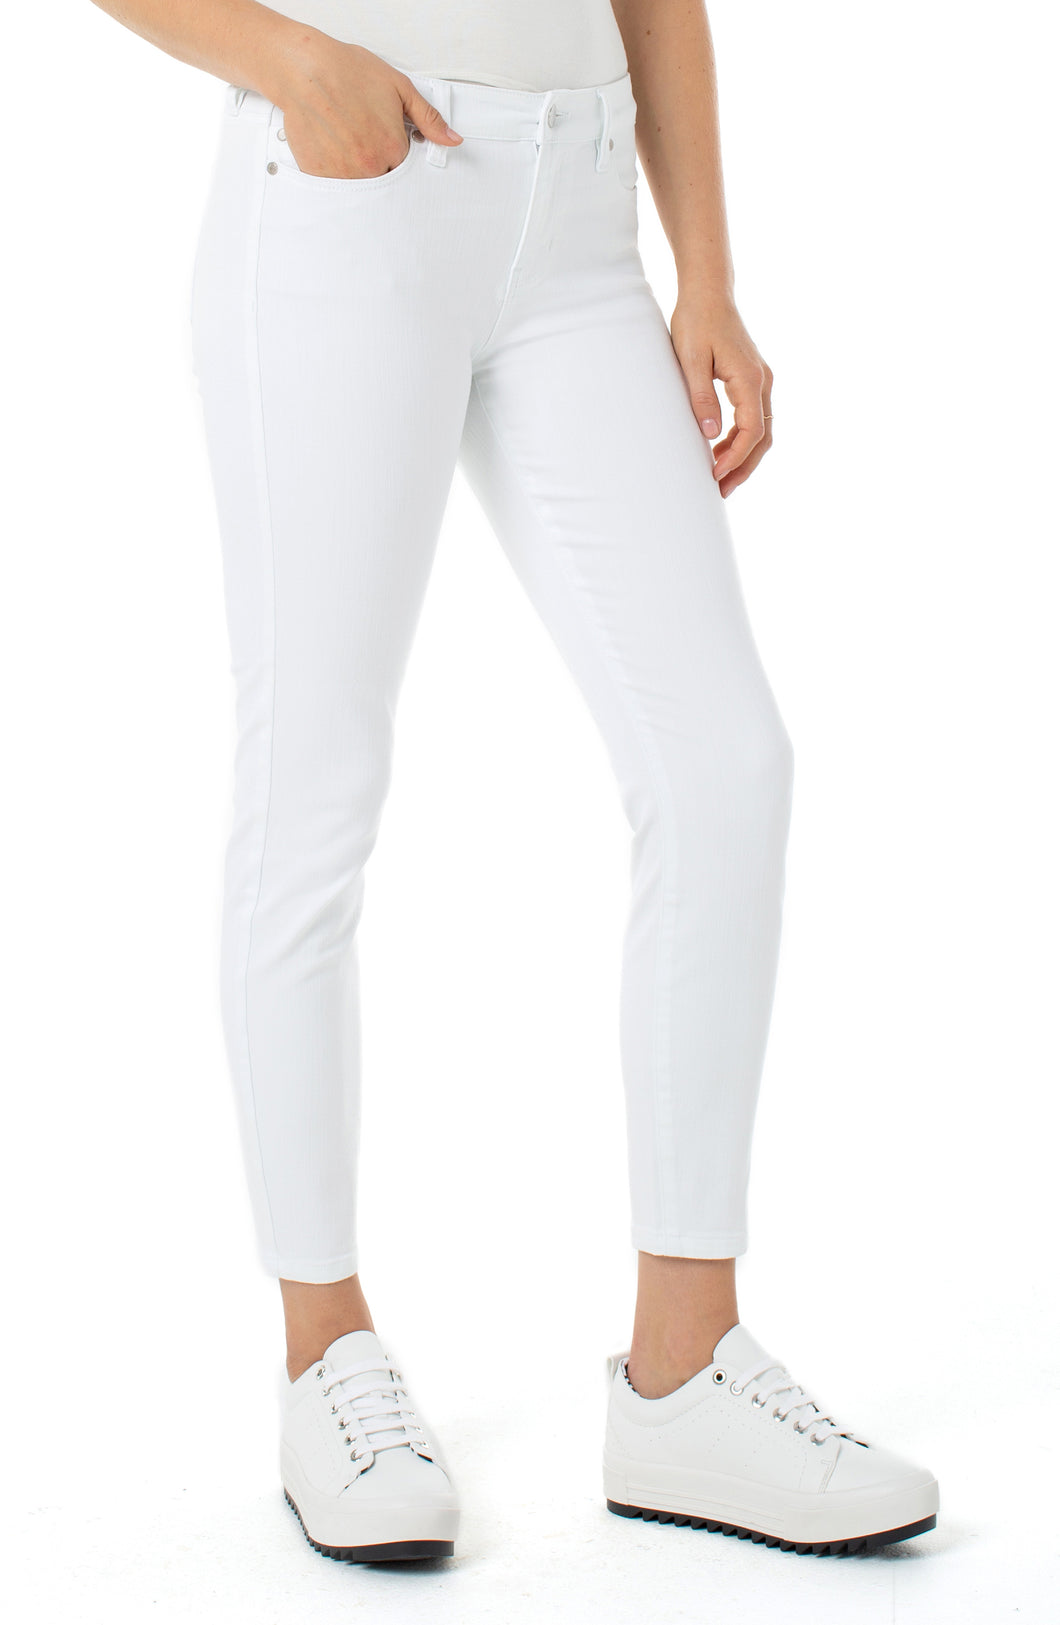 ABBY ANKLE SKINNY STRETCH 28